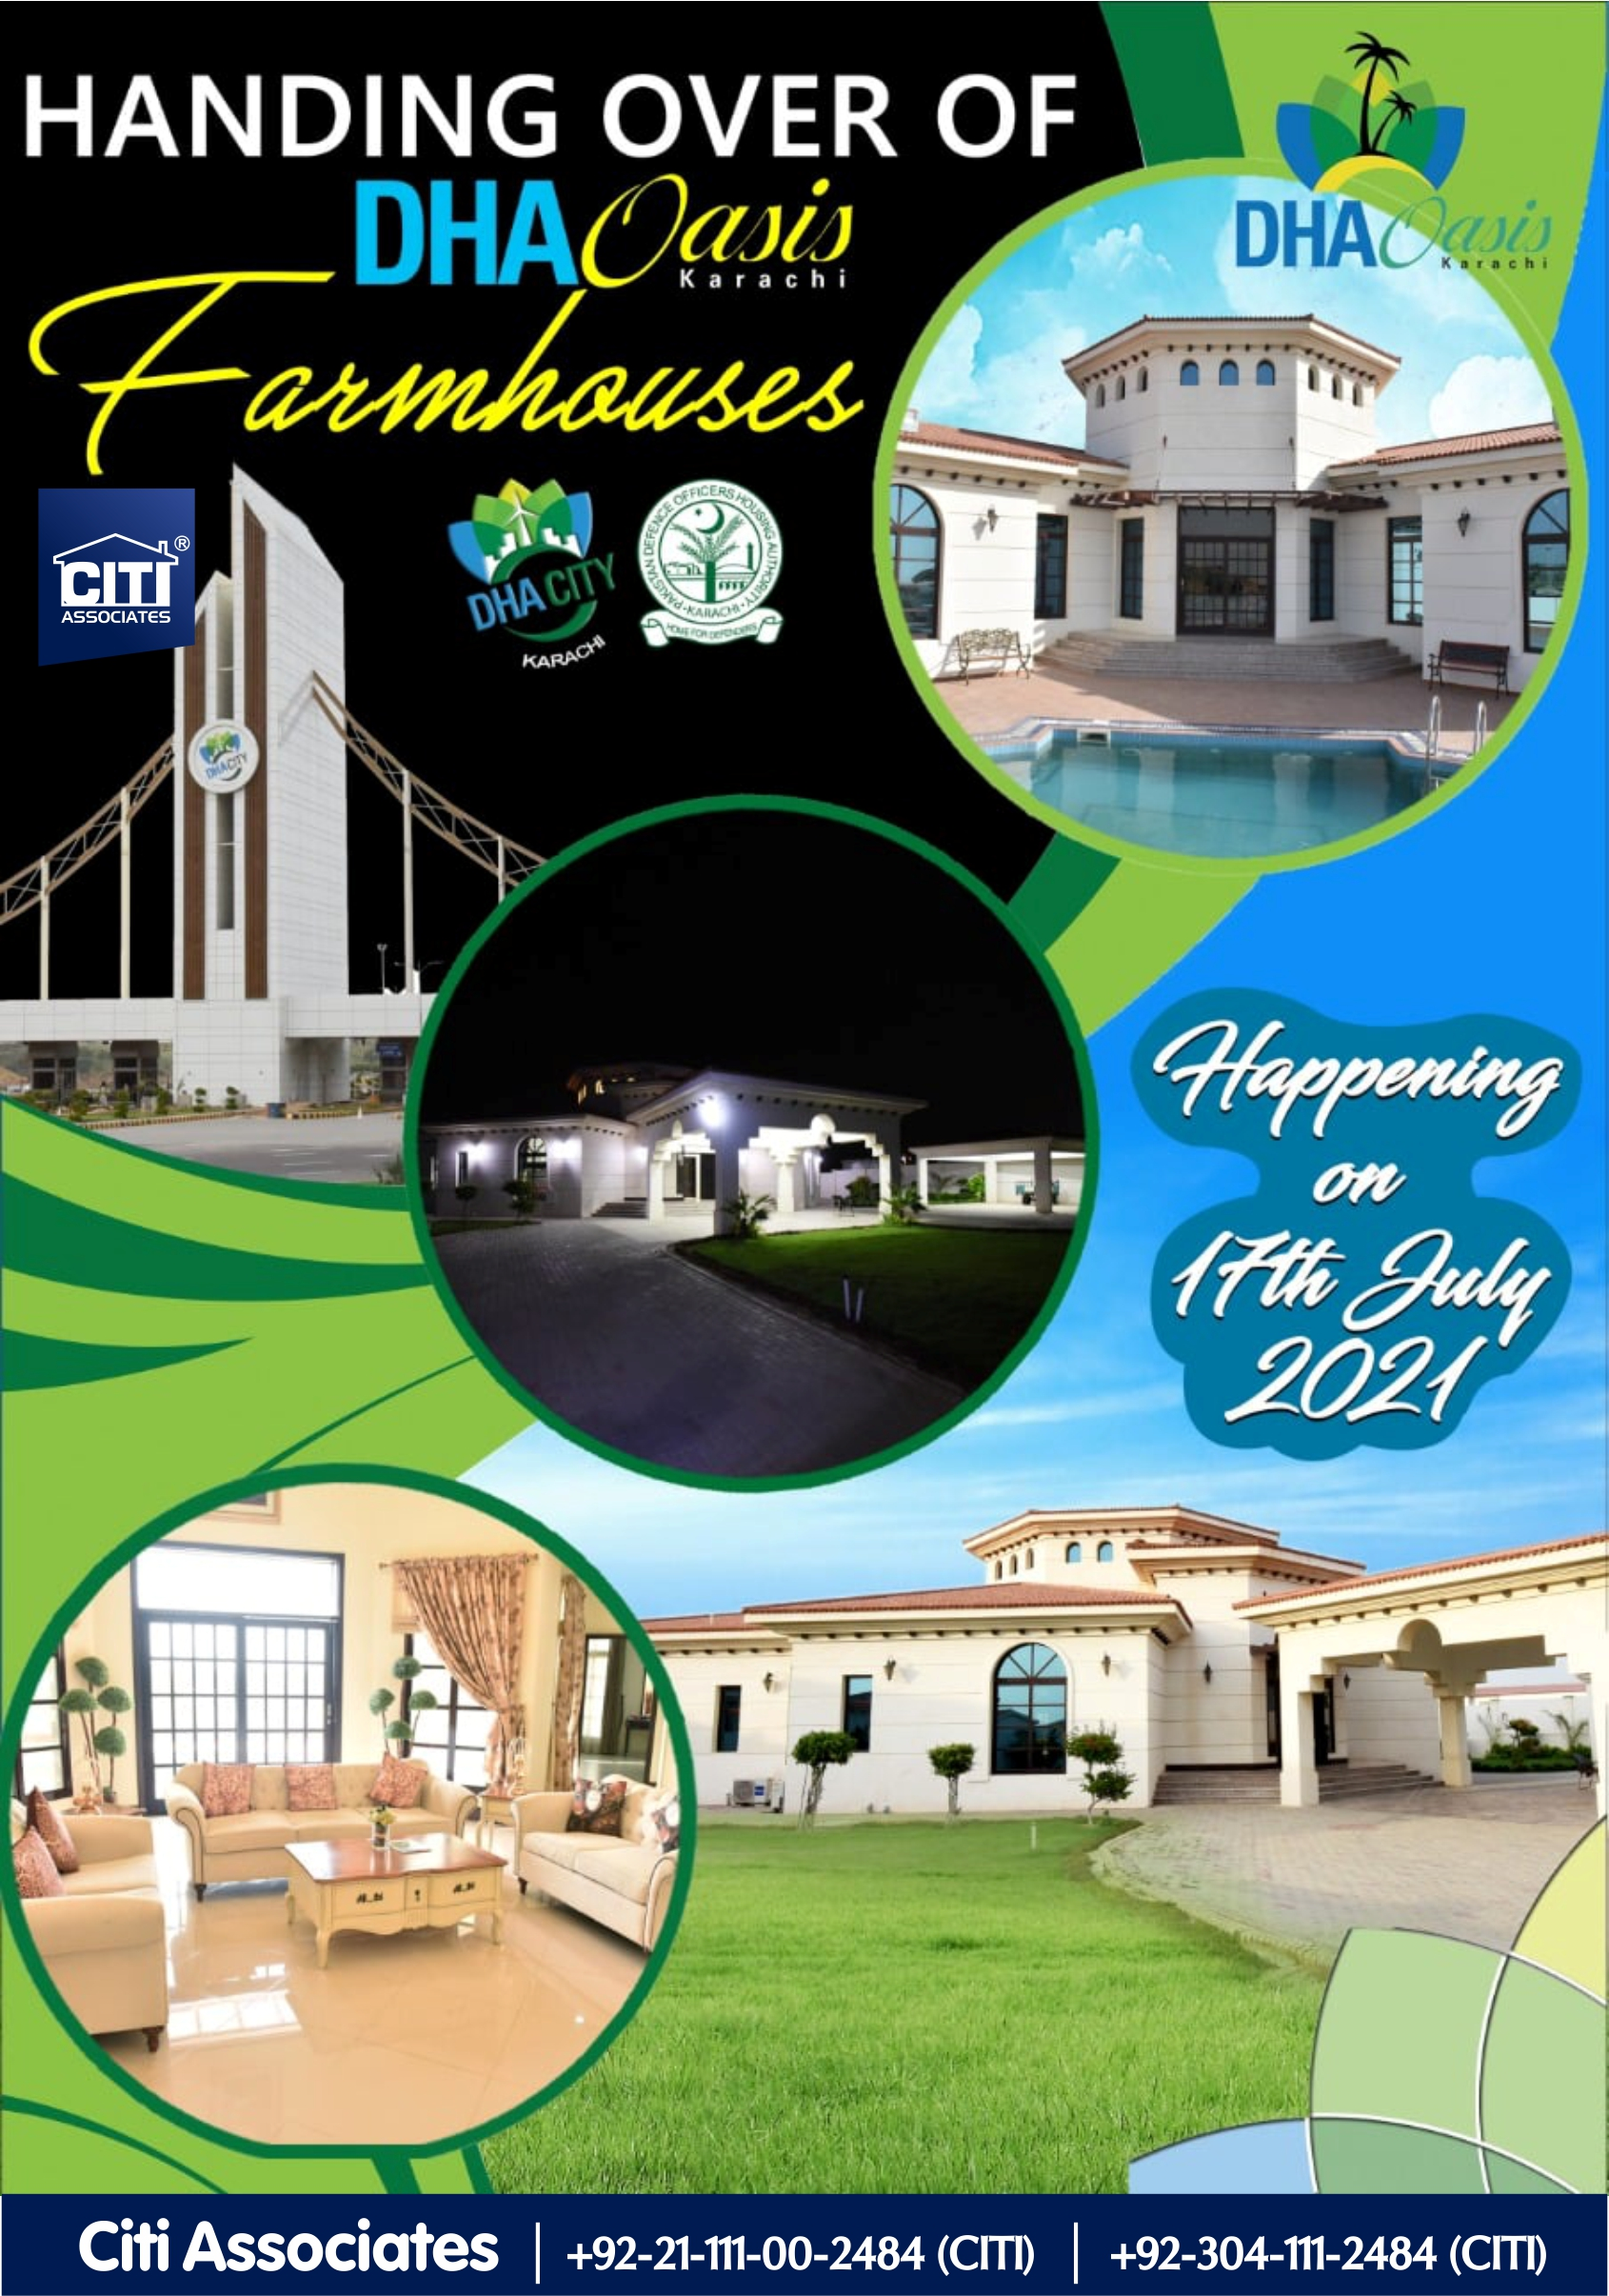 Handing-Over-of-DHA-Farmhouse-July-17